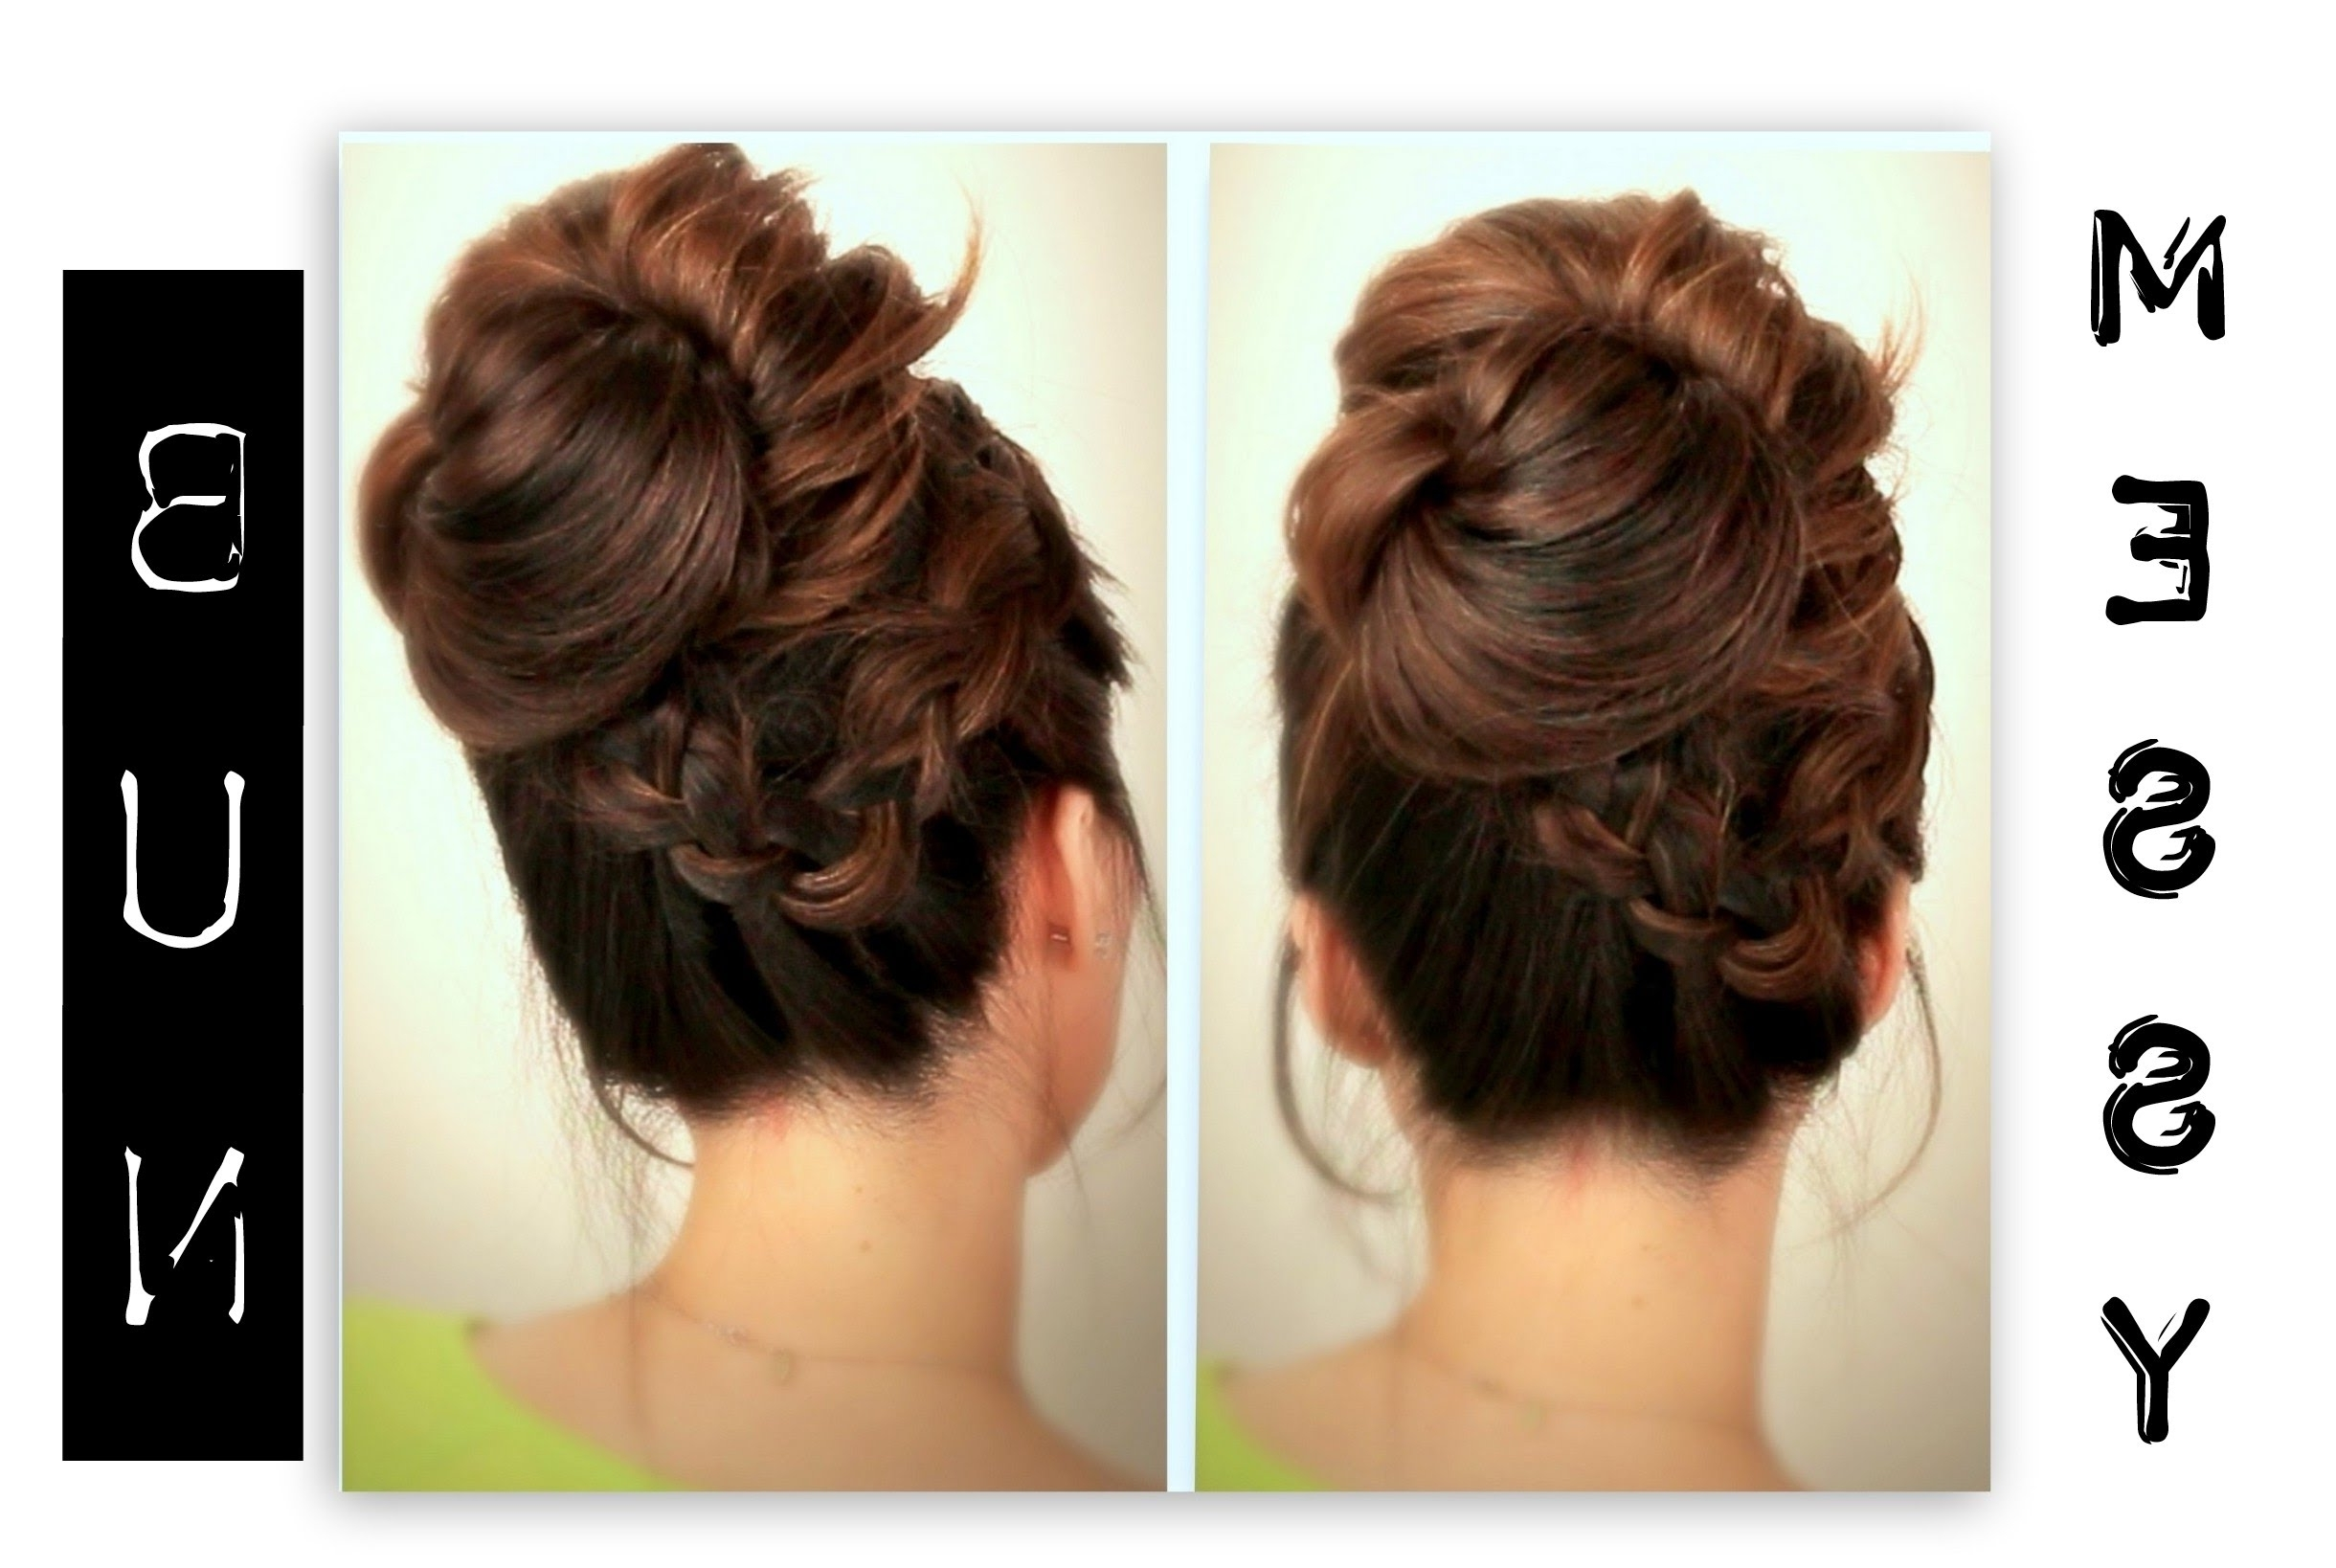 ☆ Cute, Everyday School Hairstyles | Big, Messy Bun With Braids Inside Messy Bun Updo Hairstyles (View 15 of 15)